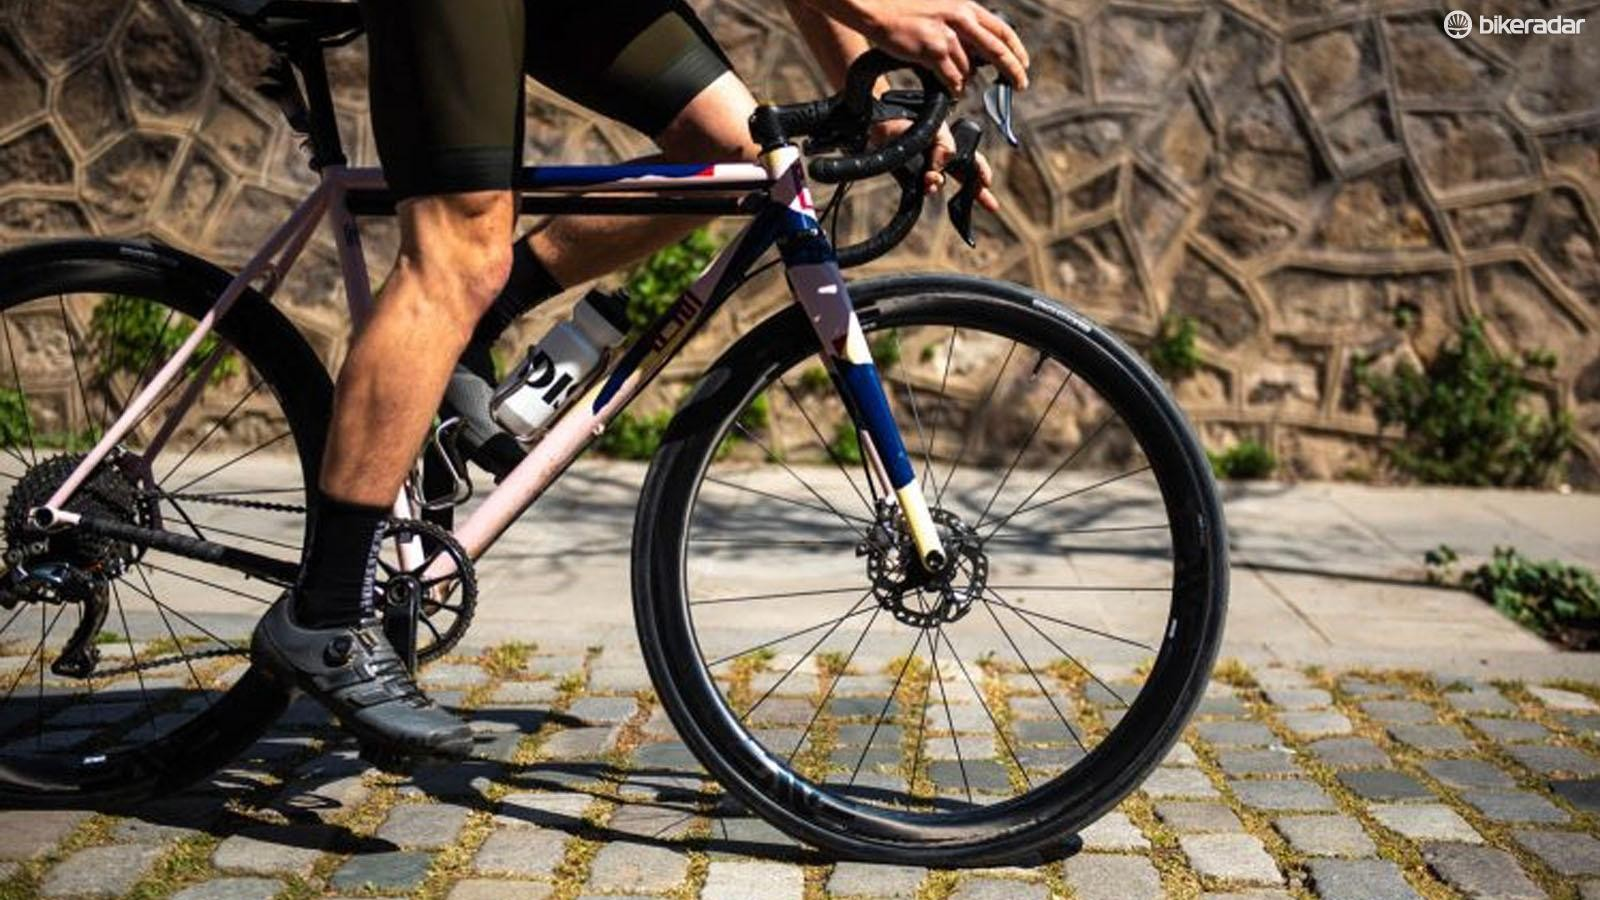 Enve has just announced the SES 3.4 AR